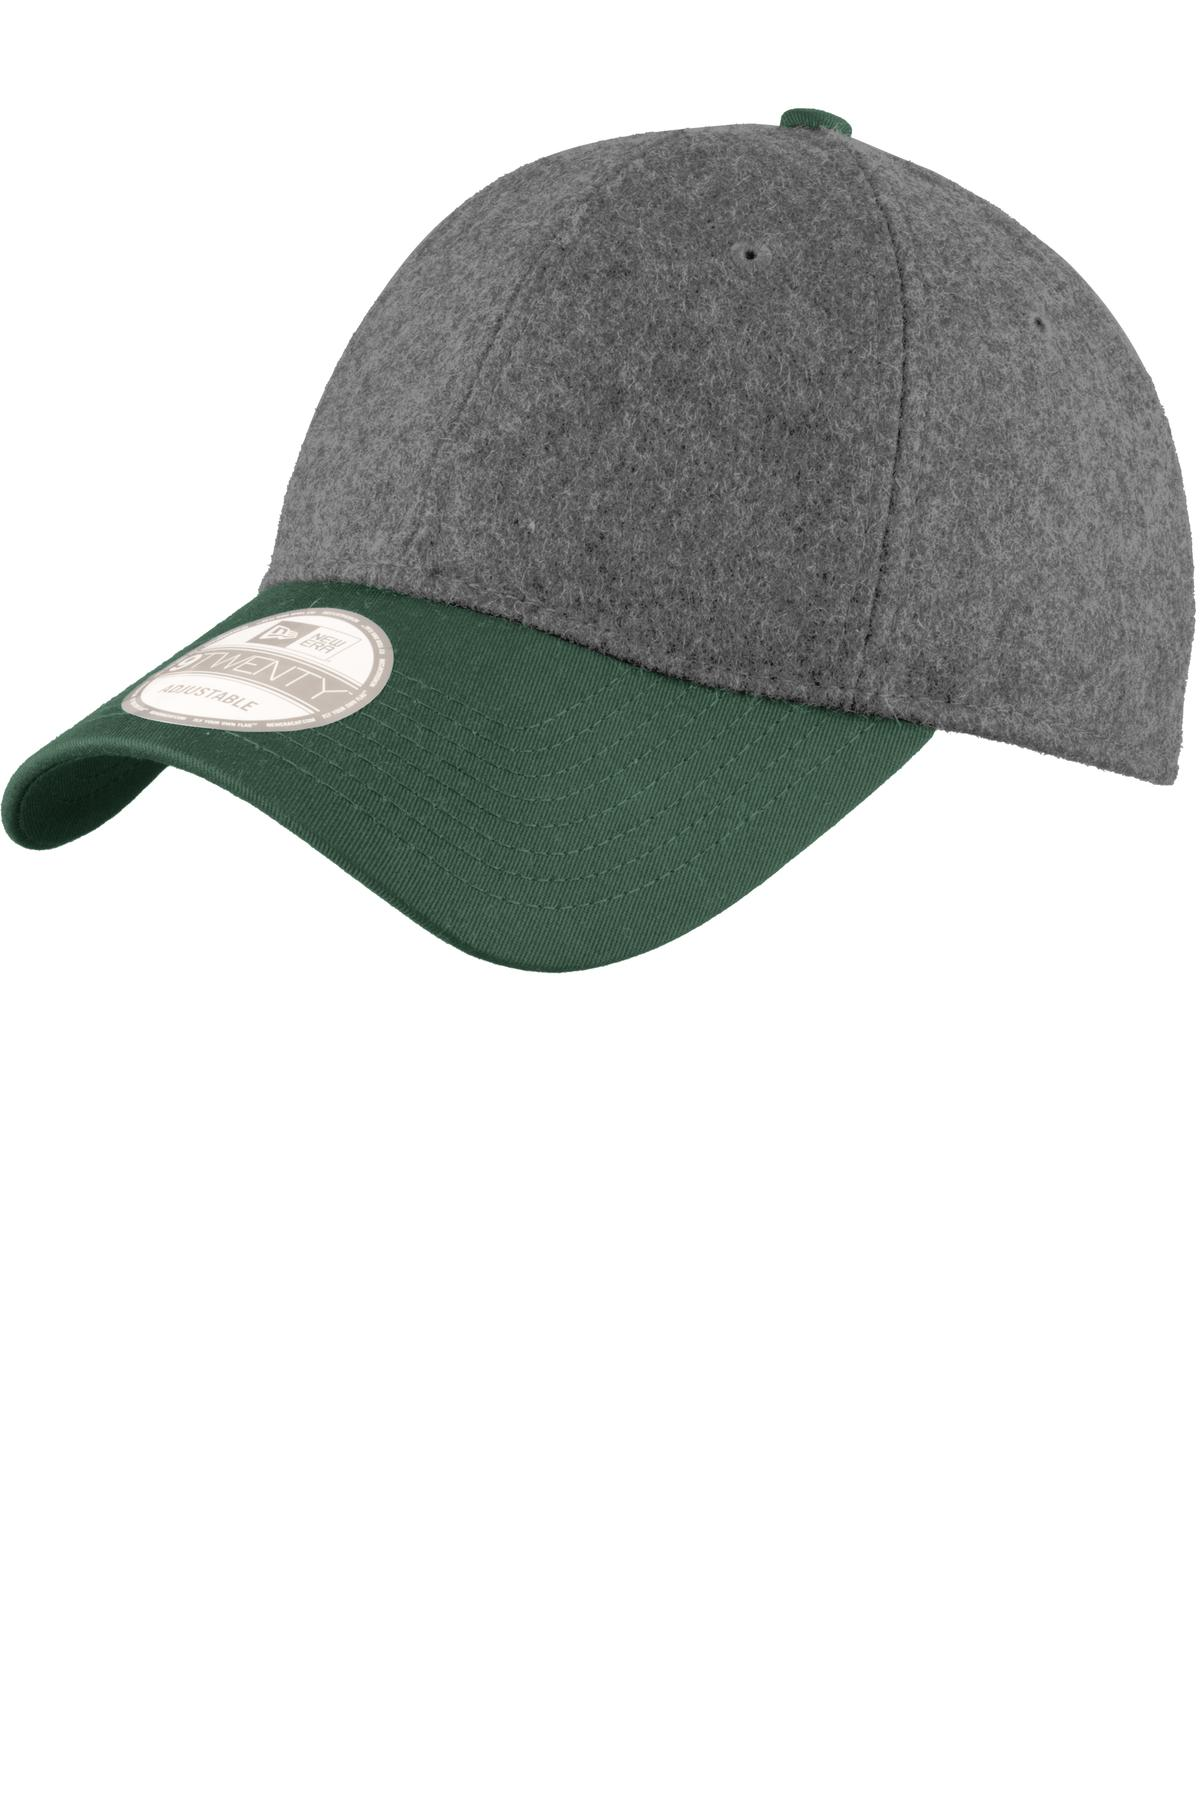 New Era® NE206 - Melton Wool Heather Cap - Headwear aeddc645a